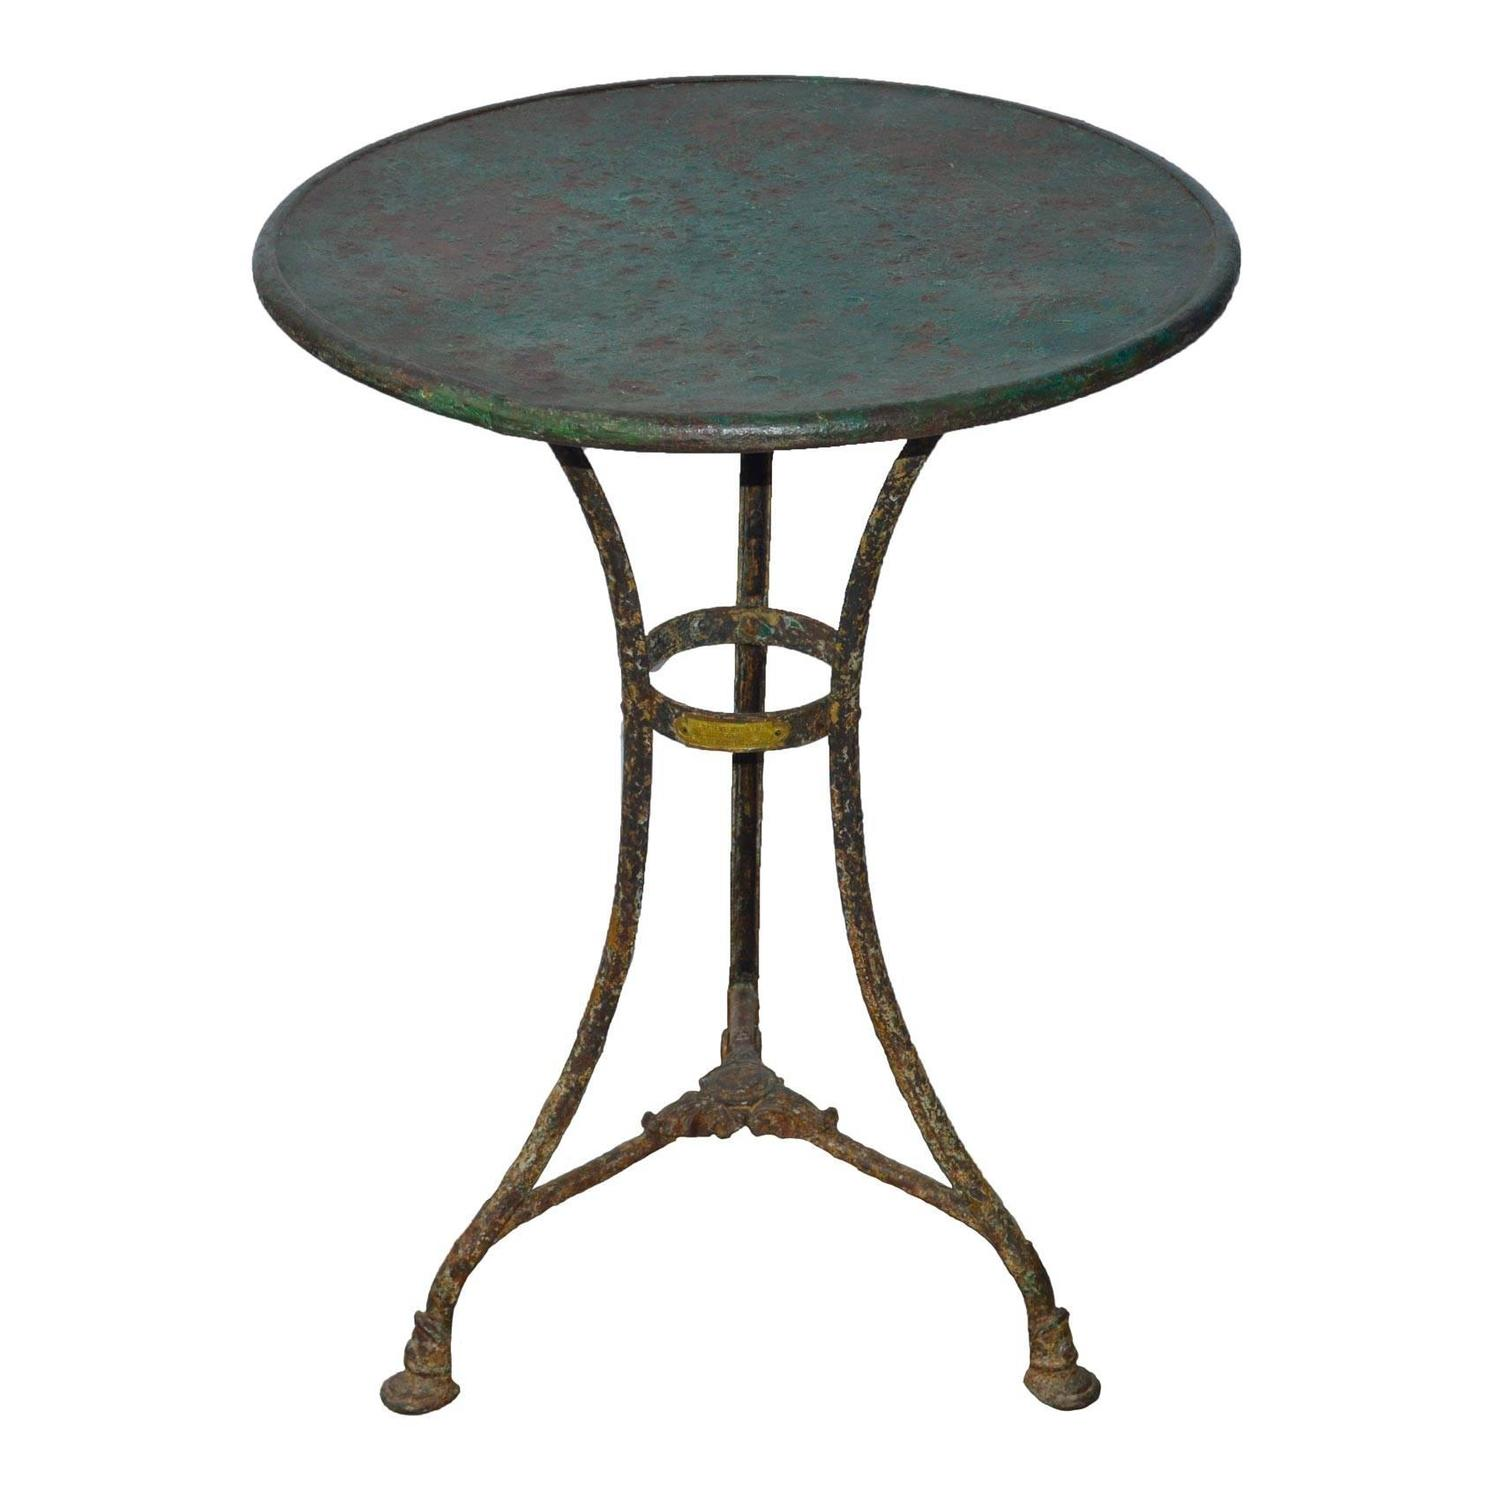 Rare Iron Gueridon From Arras Northern France For Sale At 1stdibs